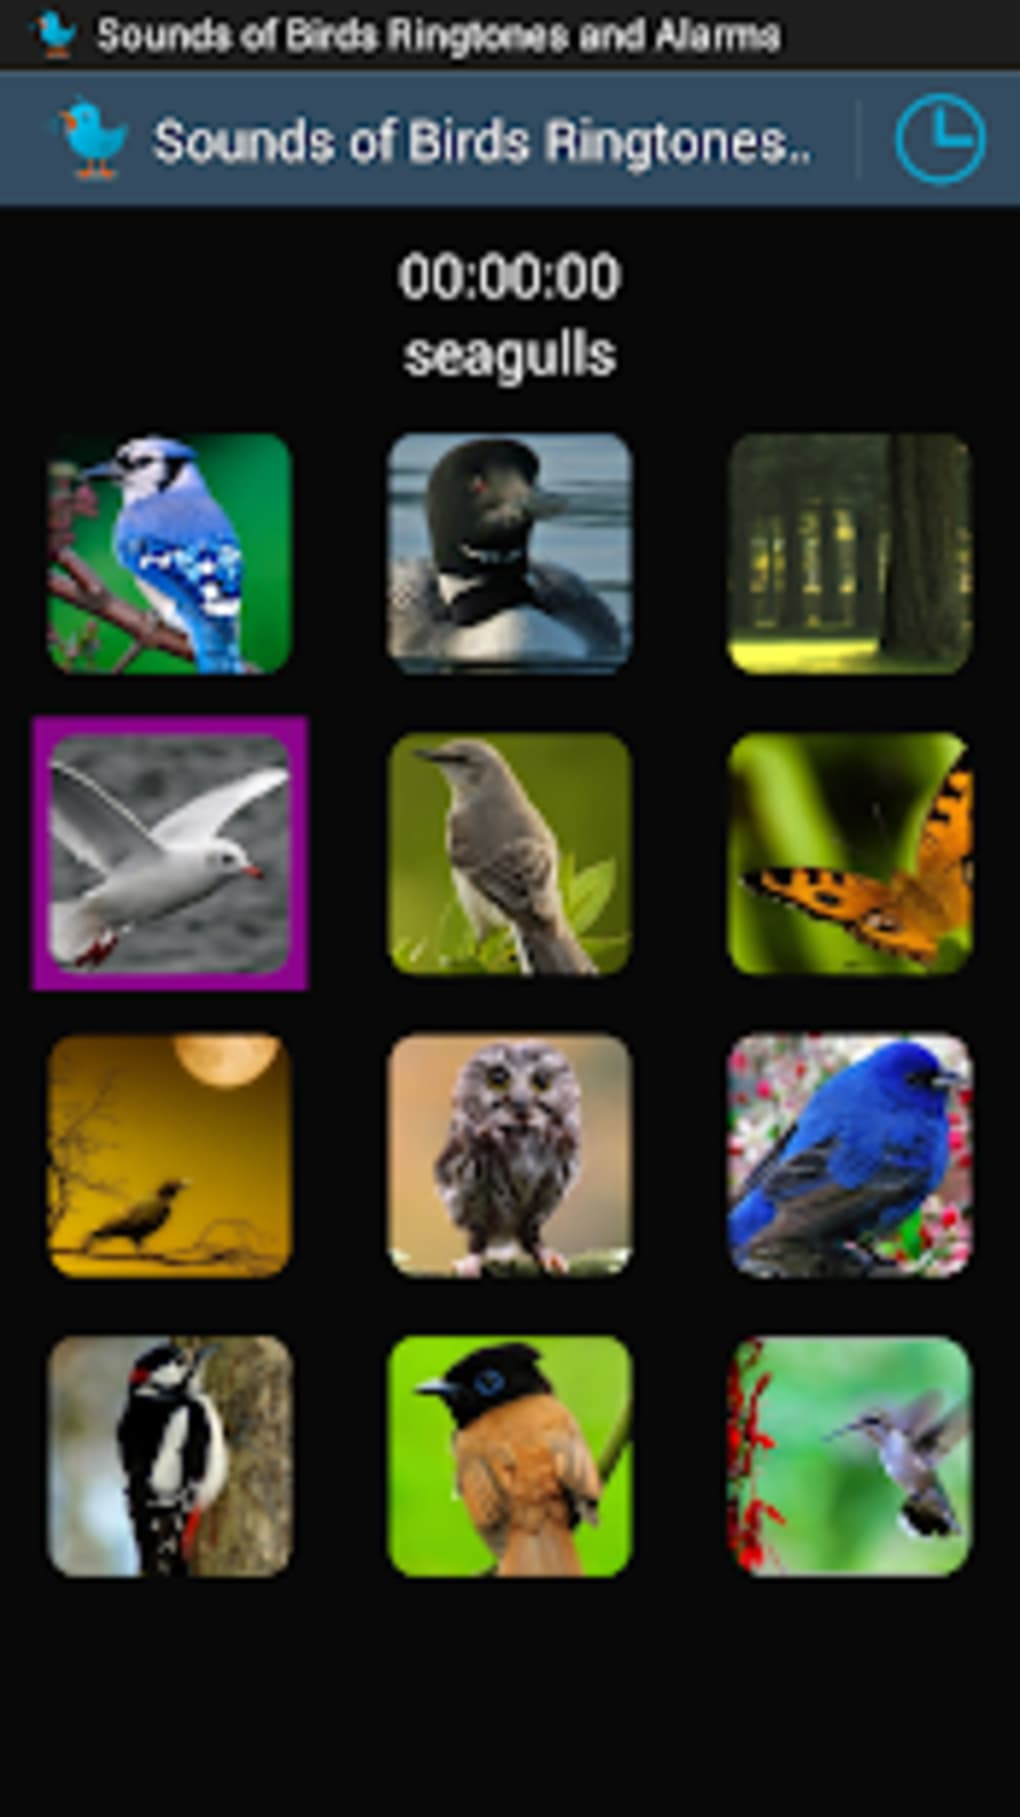 Sounds of Birds Ringtones for Android - Download